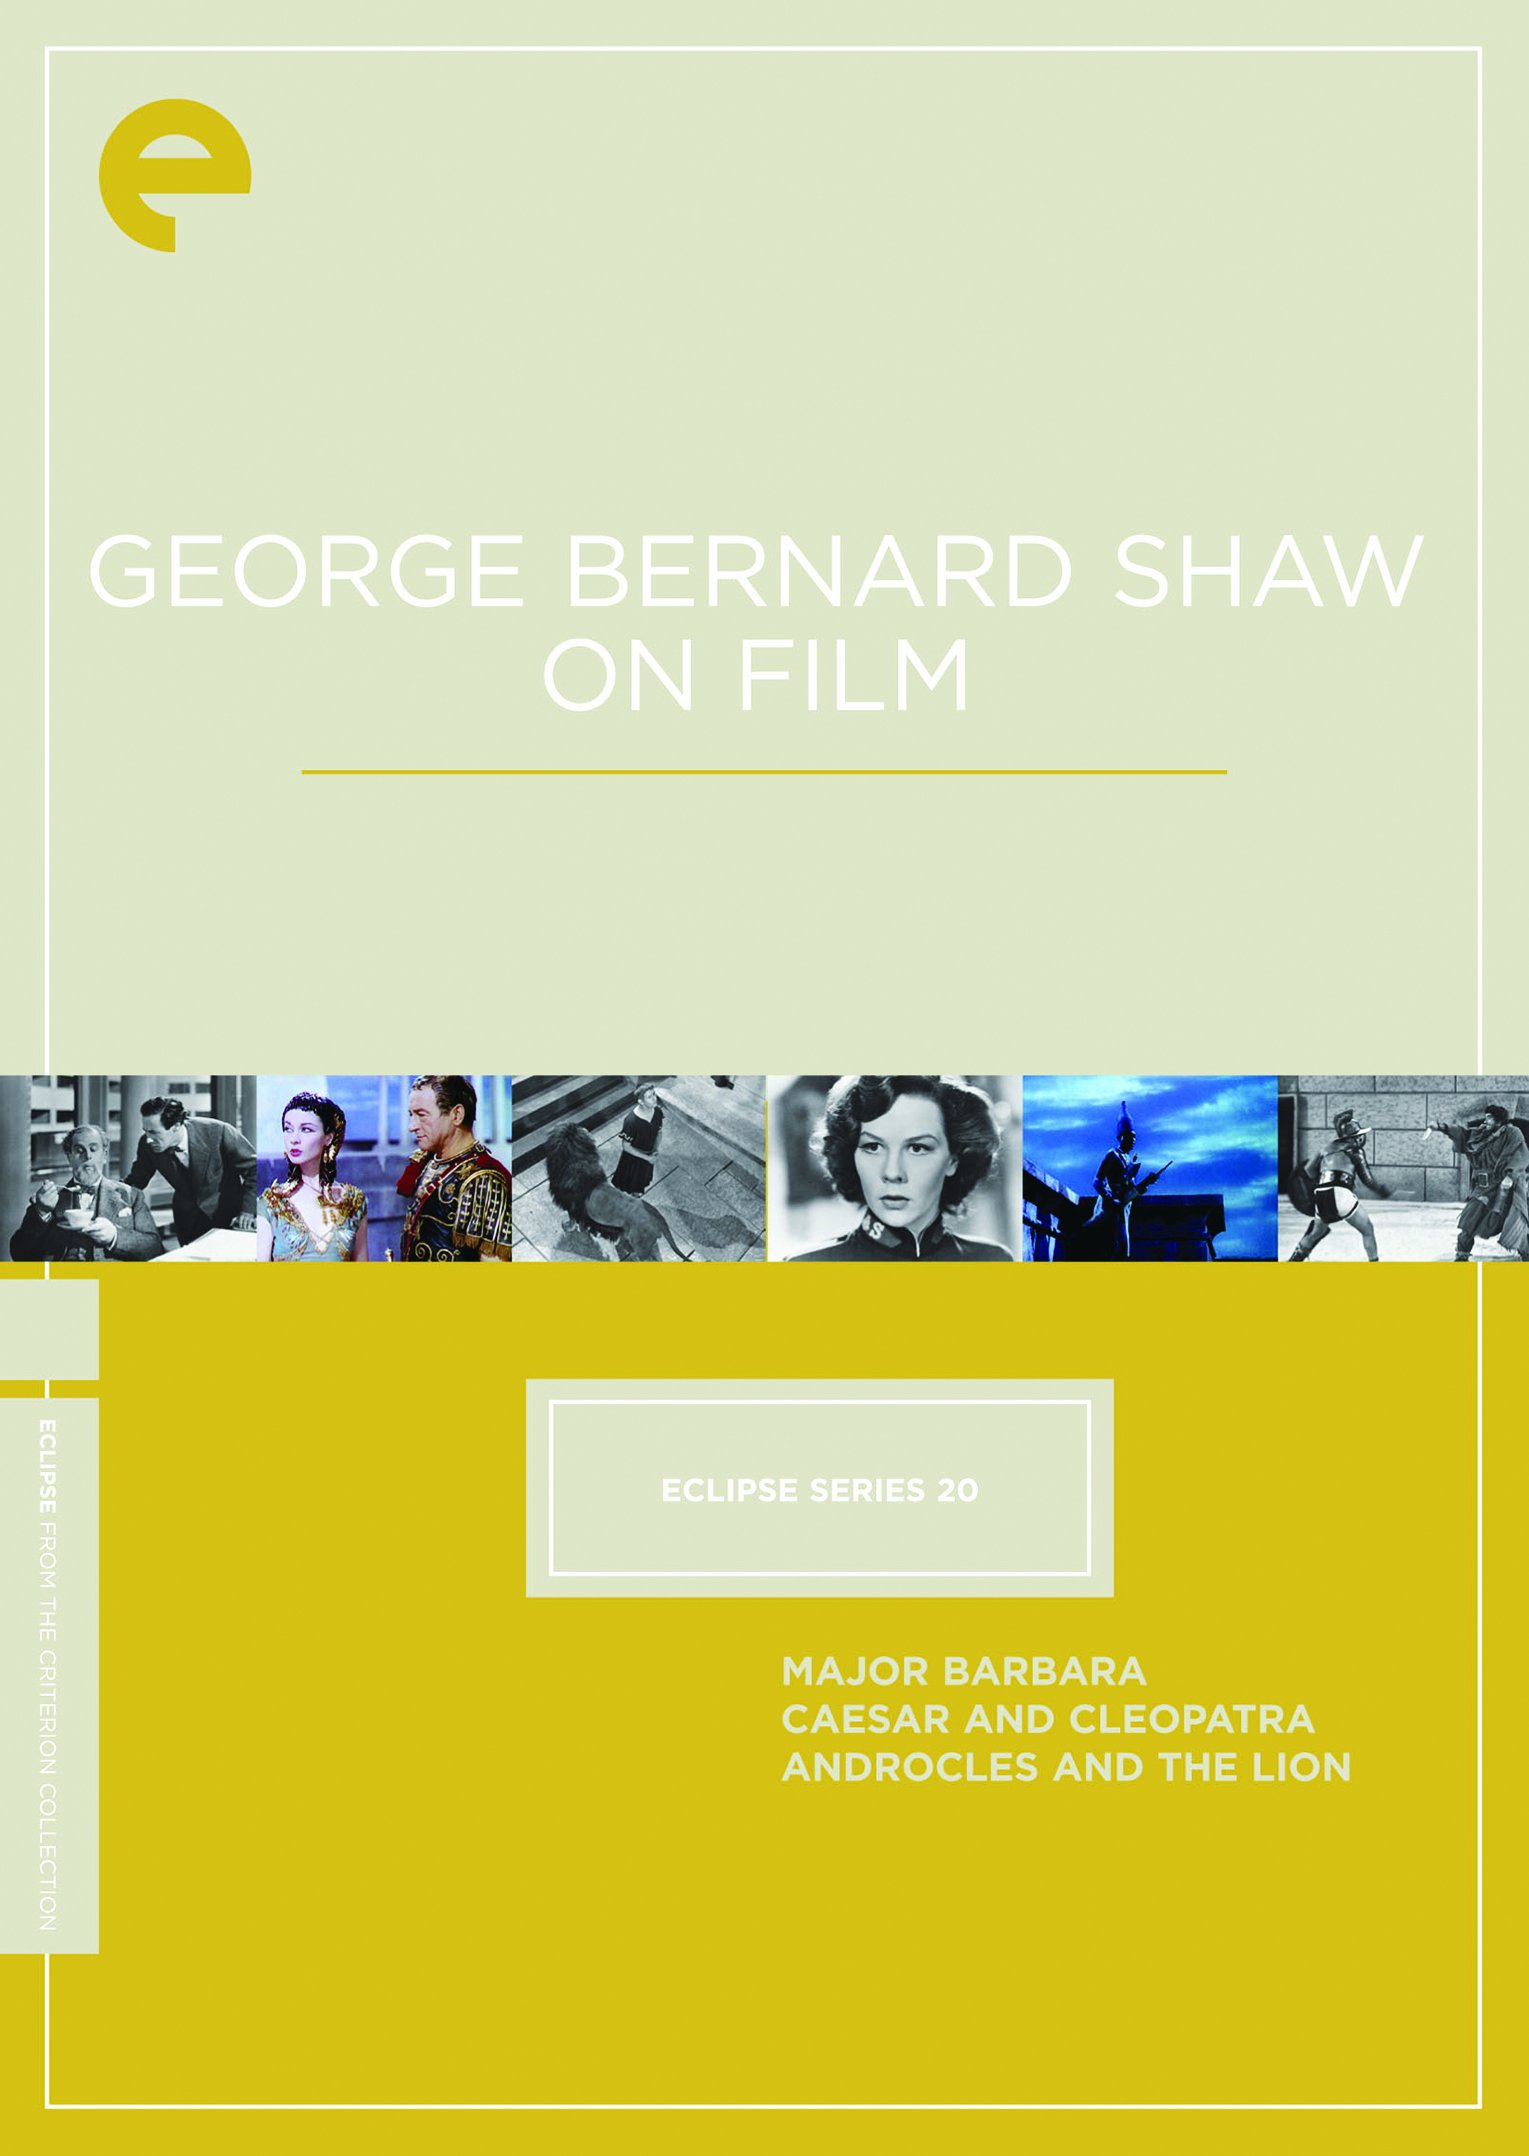 Eclipse Series 20: George Bernard Shaw on Film (Major Barbara / Caesar and Cleopatra / Androcles and the Lion) (The Criterion Collection) by Image Entertainment